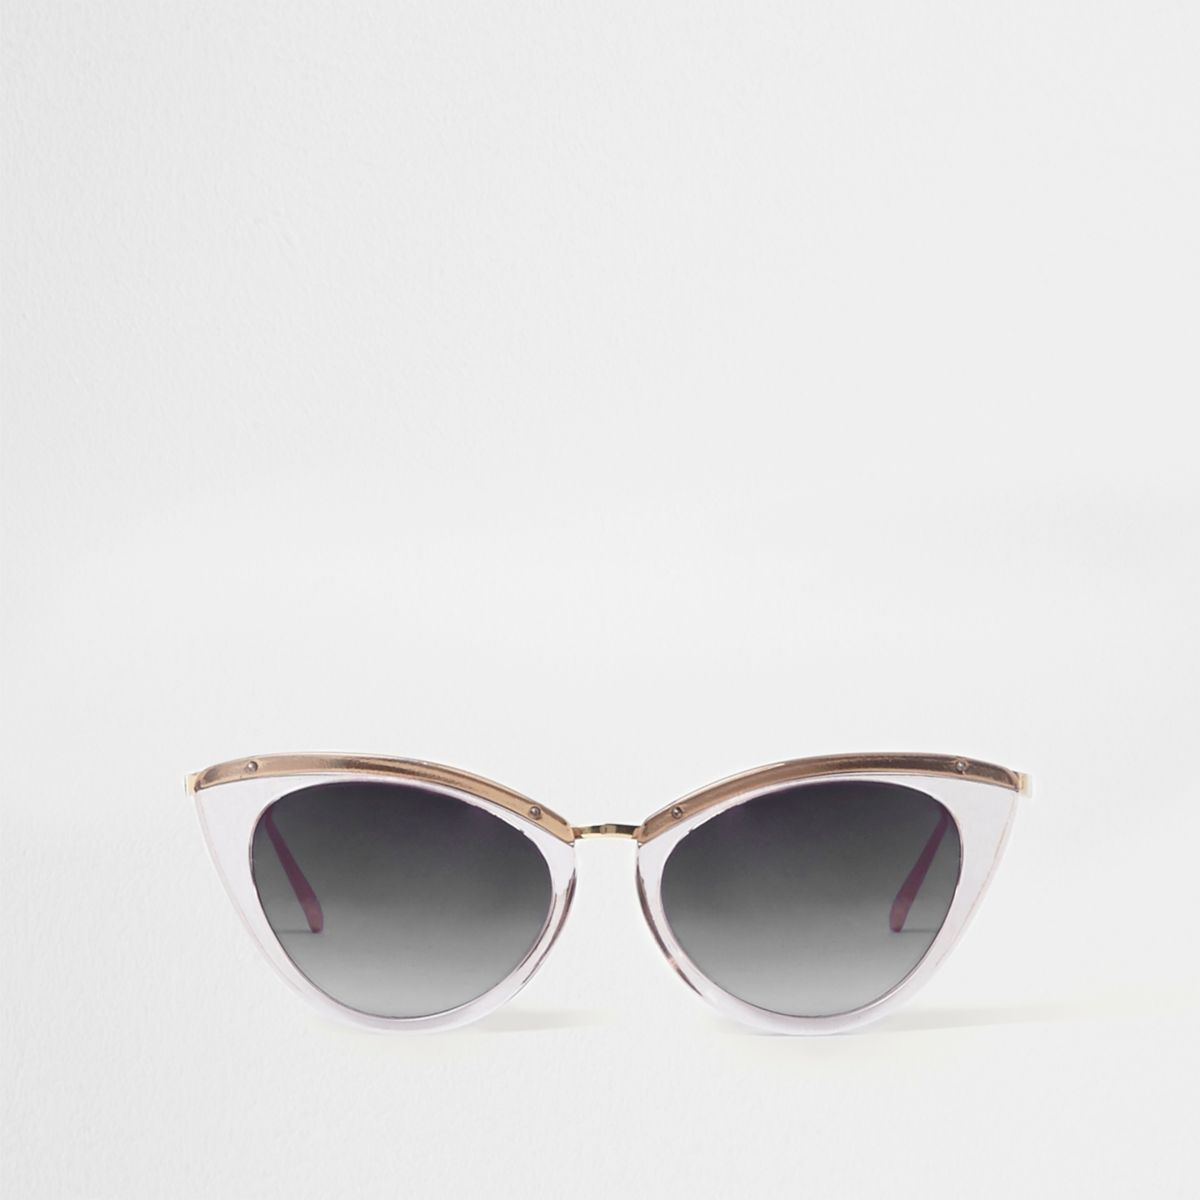 Grey cat eye smoke lens sunglasses